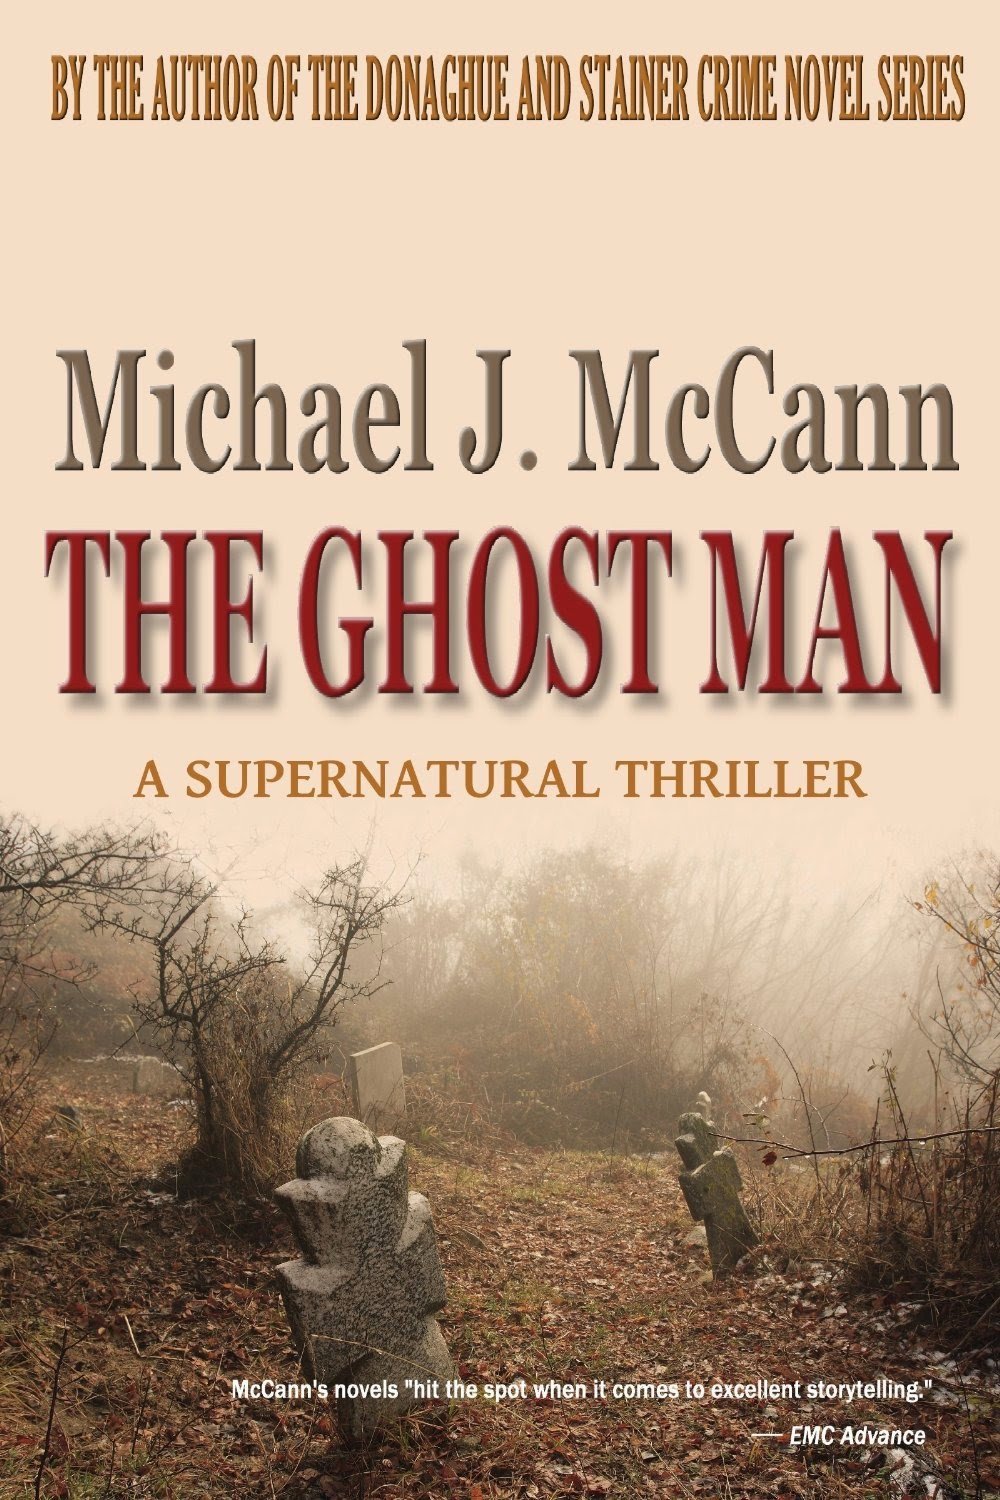 http://www.amazon.com/Ghost-Man-Michael-J-McCann-ebook/dp/B00BFKOHIK/ref=sr_1_sc_1?s=books&ie=UTF8&qid=1412428436&sr=1-1-spell&keywords=michael+j.+mcmann